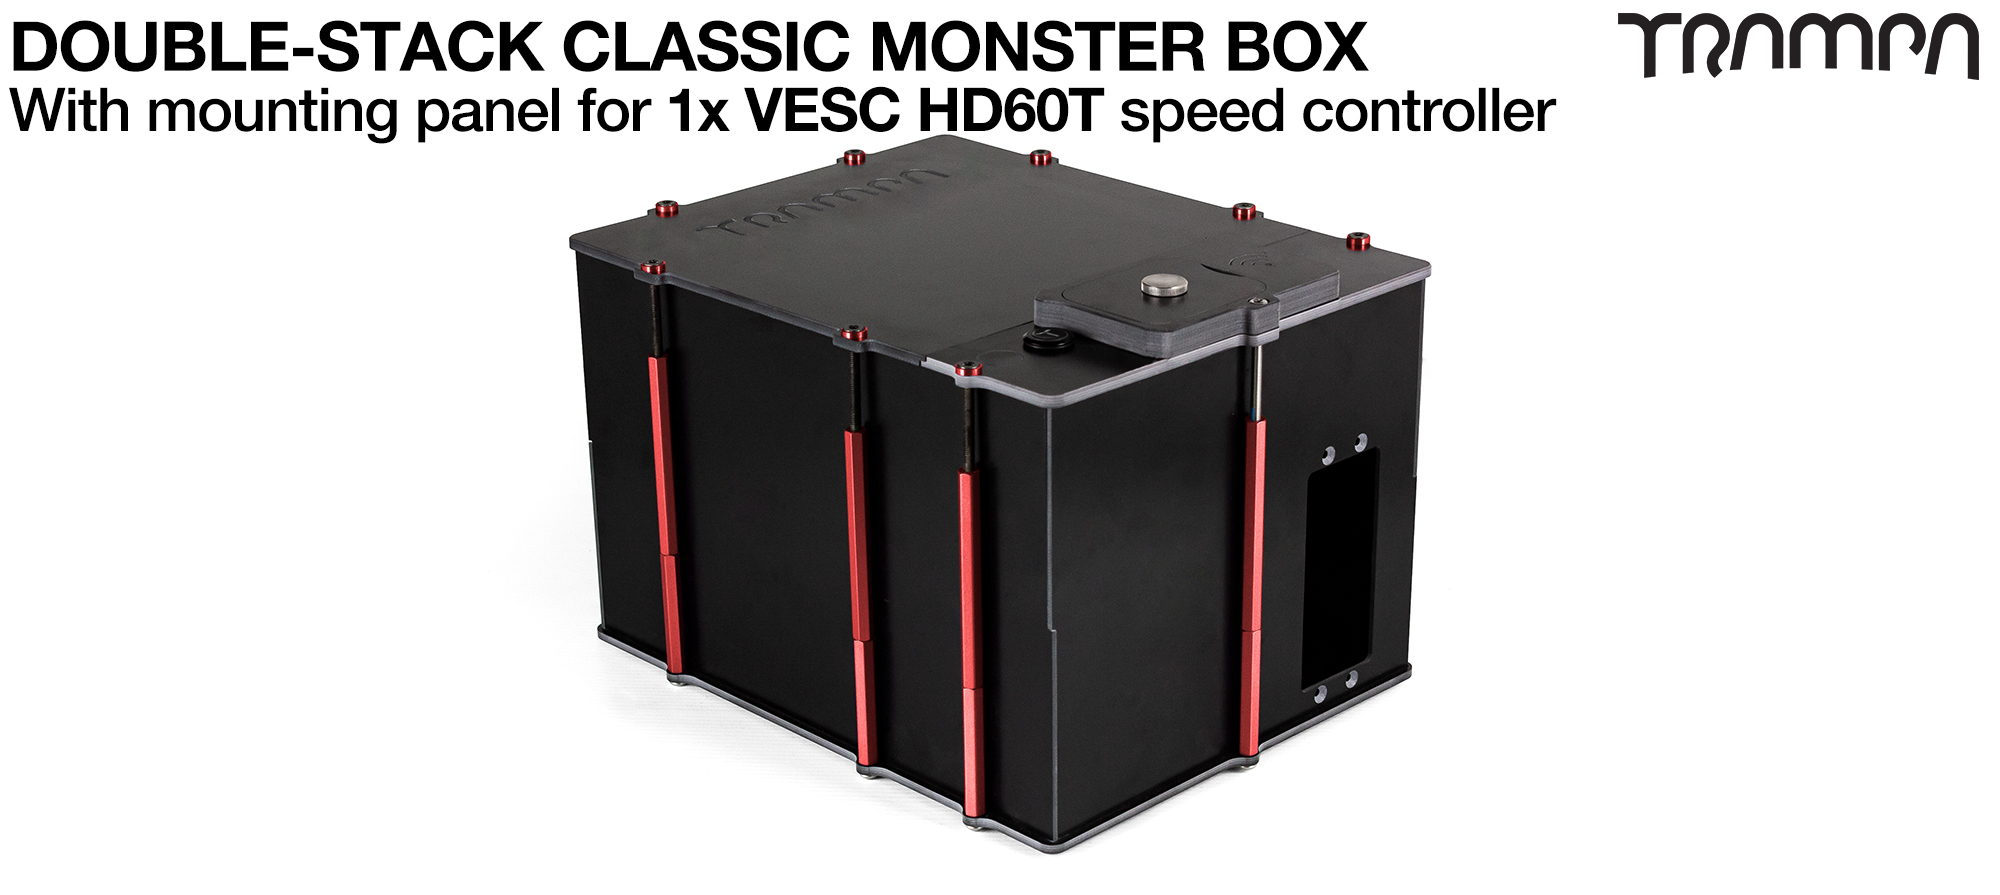 Classic MONSTER Box MkV DOUBLE STACKER fits 168x 18650 cells to give 42Ah Range or 2x 22000Ah Li-Po cells to give 44Ah Range & has Panels to fit 1x VESC HD-60T internally.